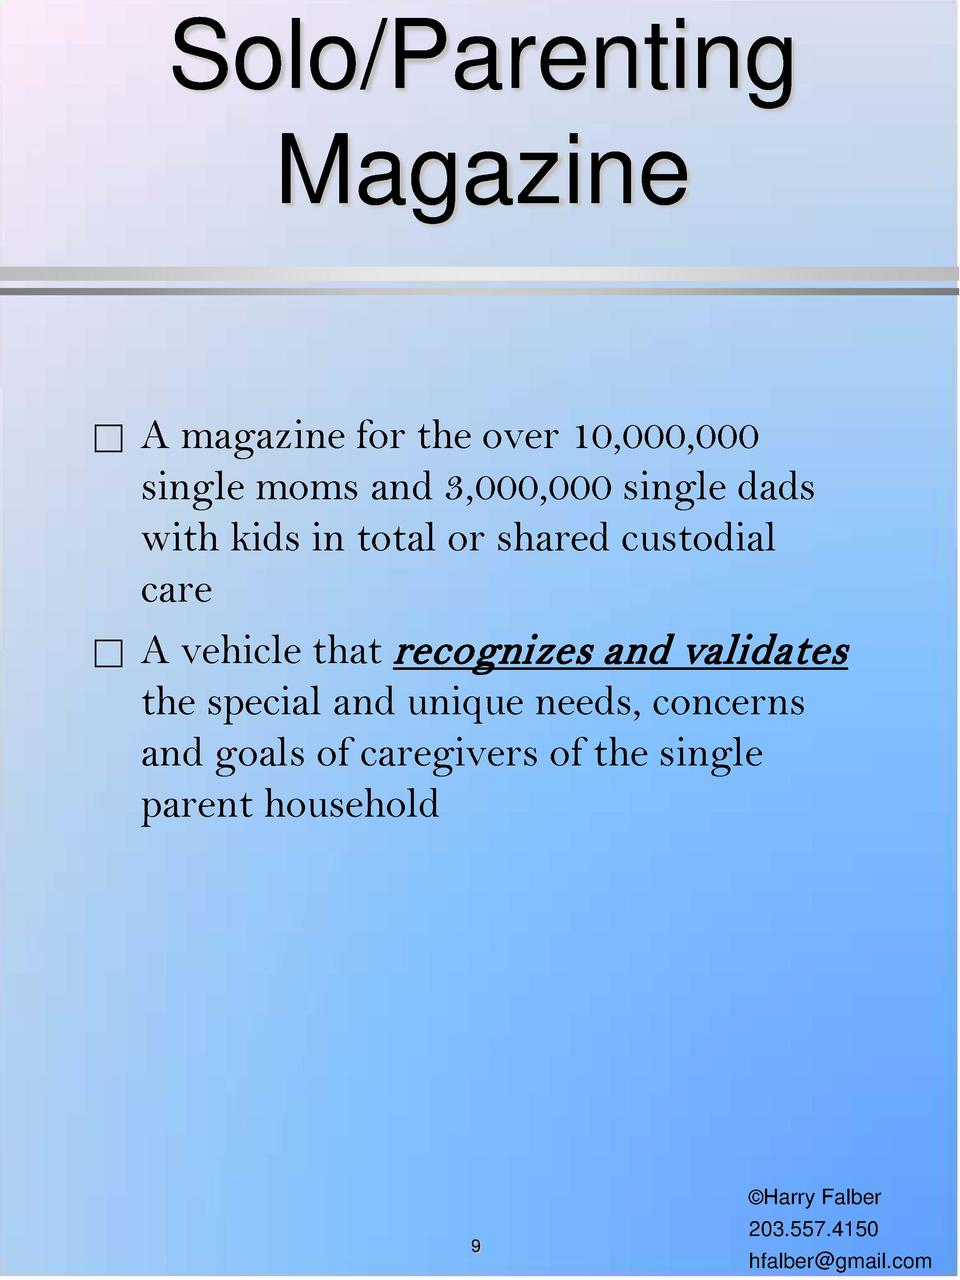 Solo Parenting Magazine           A magazine for the over 10,000,000 single moms and 3,000,000 single dads with kids in to...